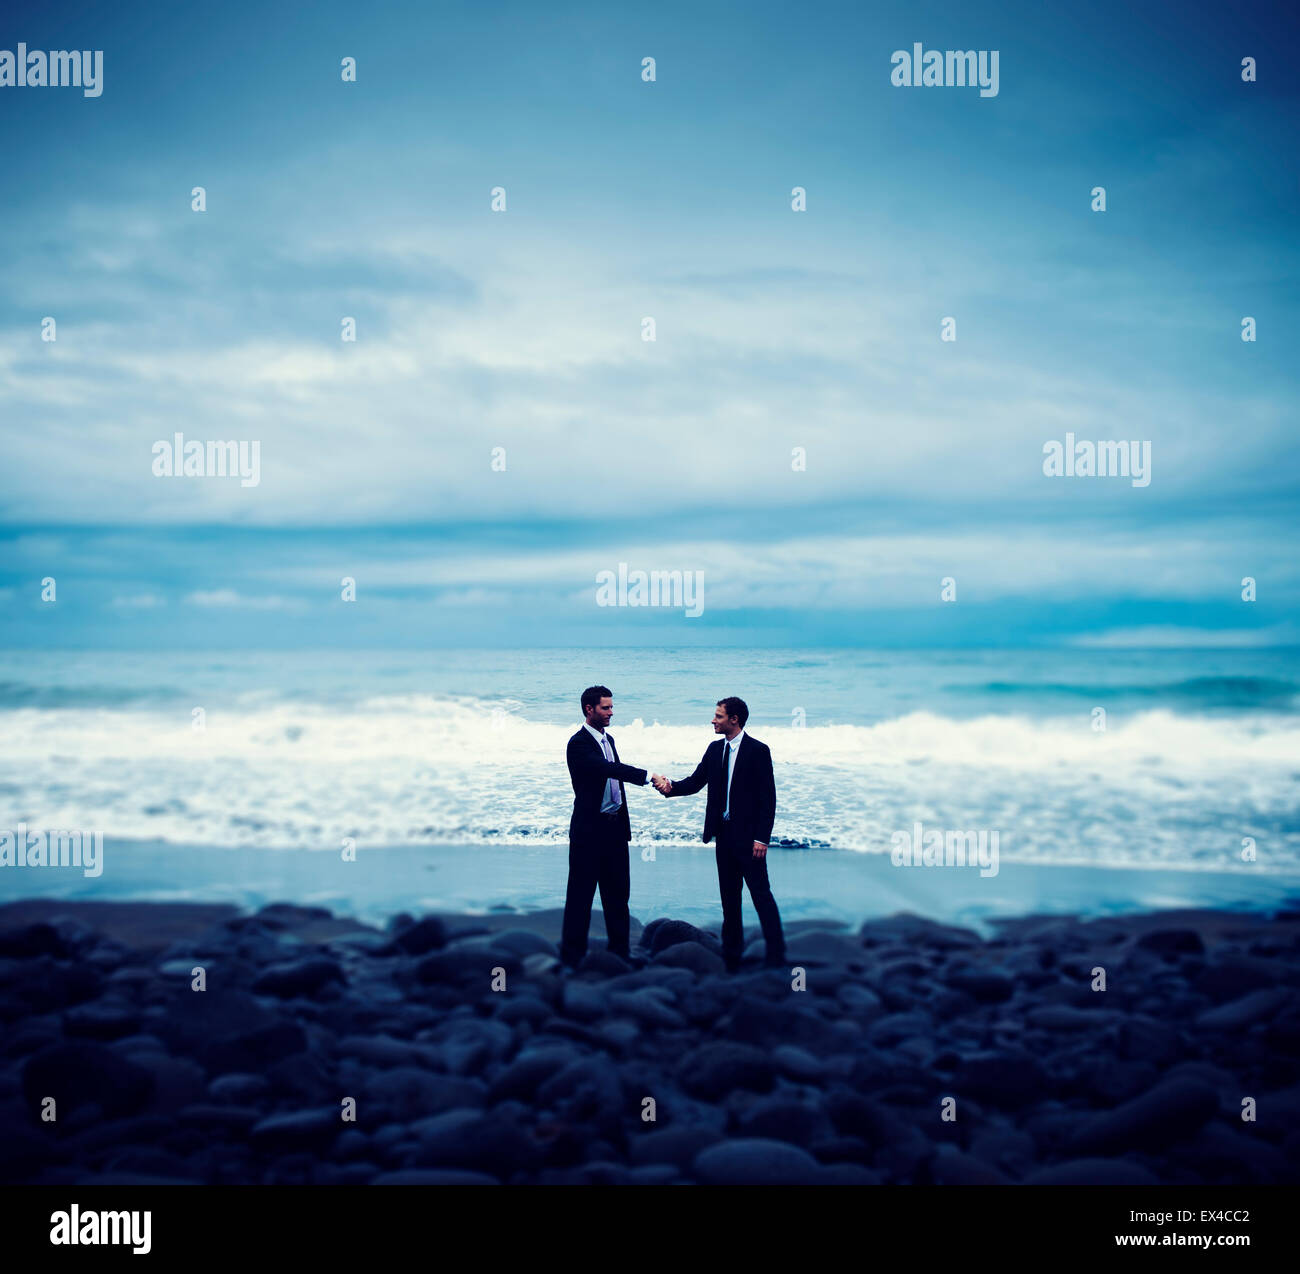 Businessmen Commitment Handshake Beach Relaxatiion Concept - Stock Image